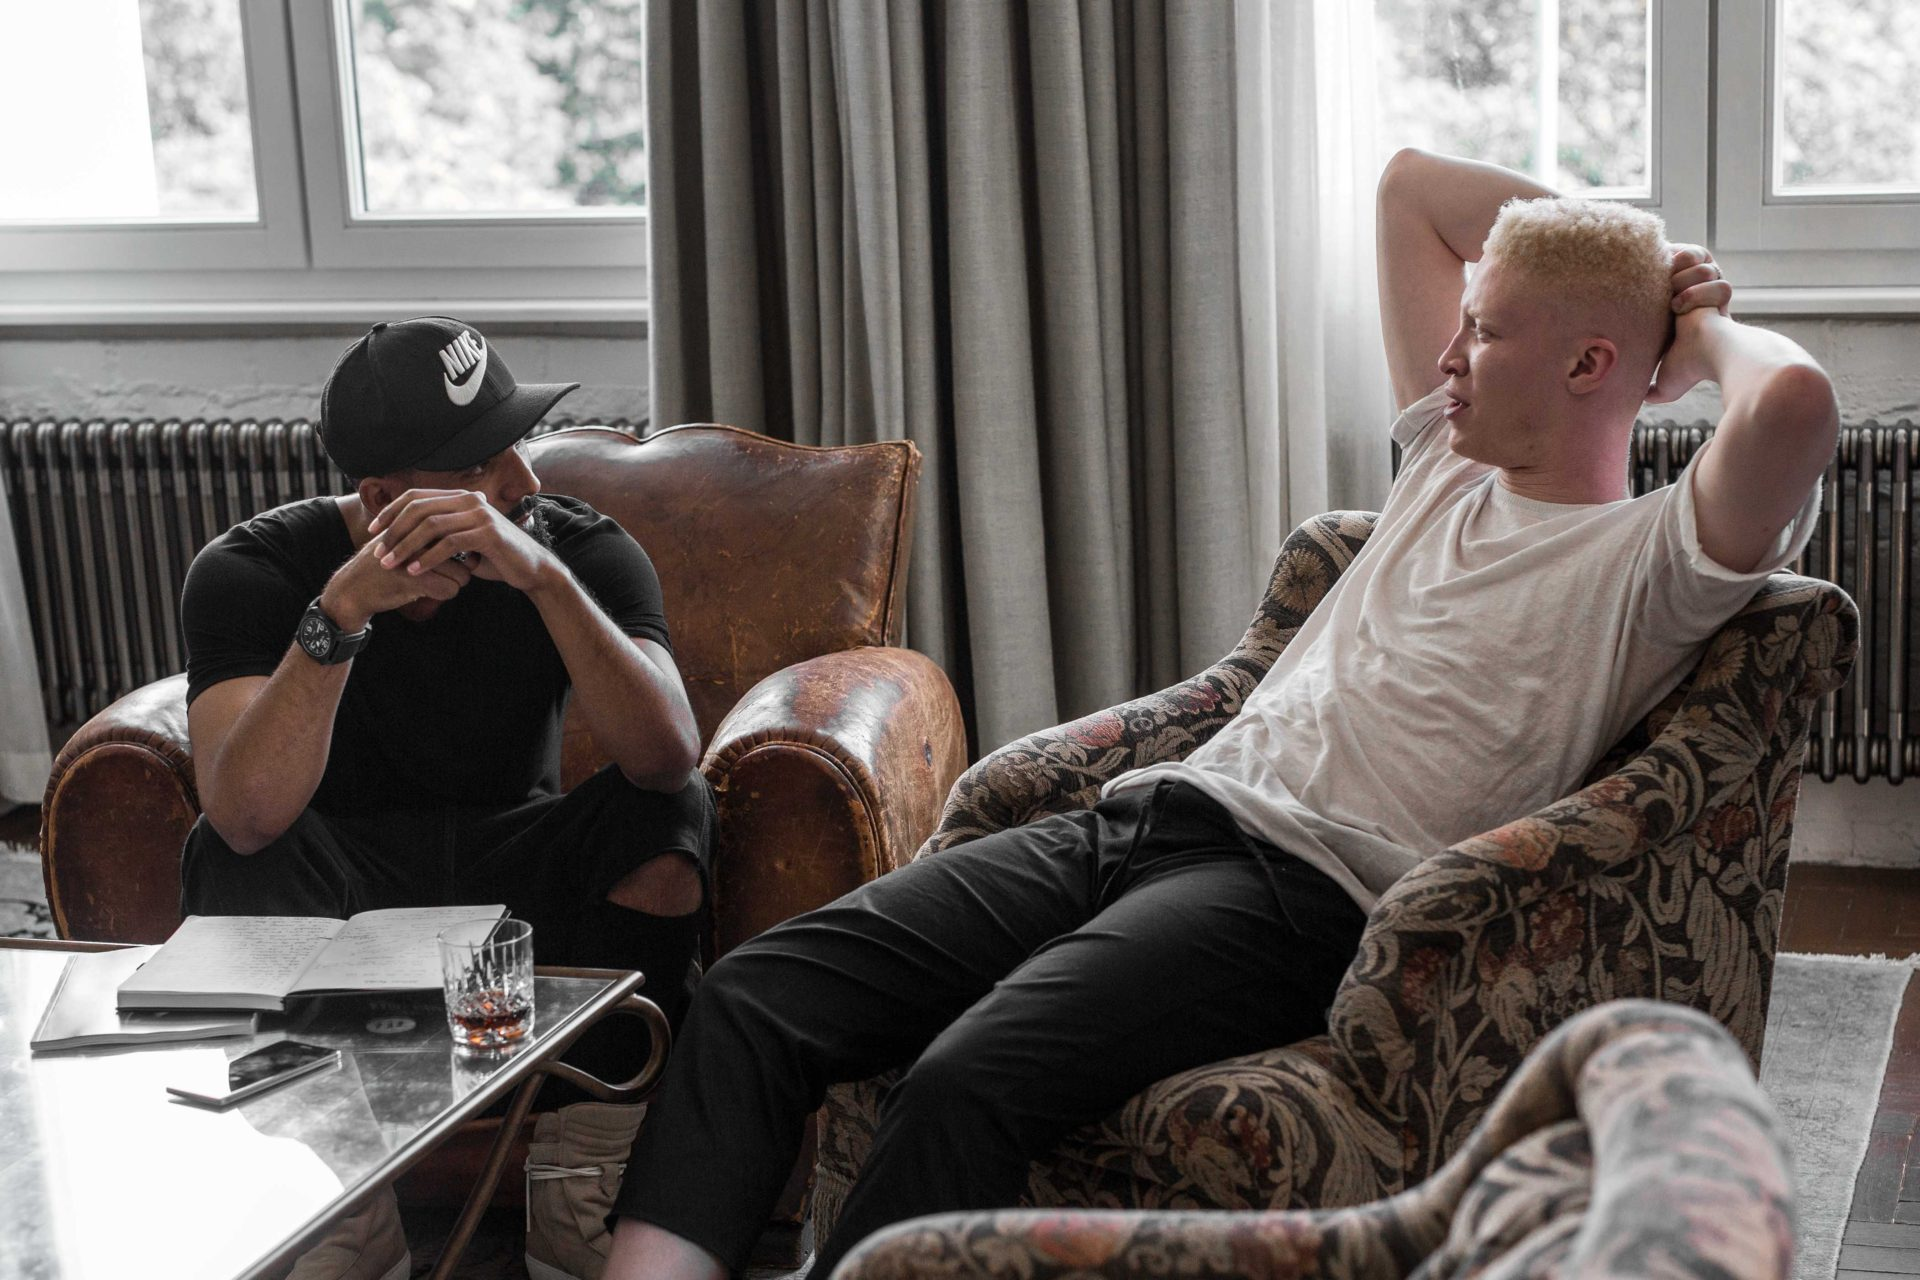 Shaun Ross Interview with New Kiss on the Blog at the Axe Magazine Launch Event